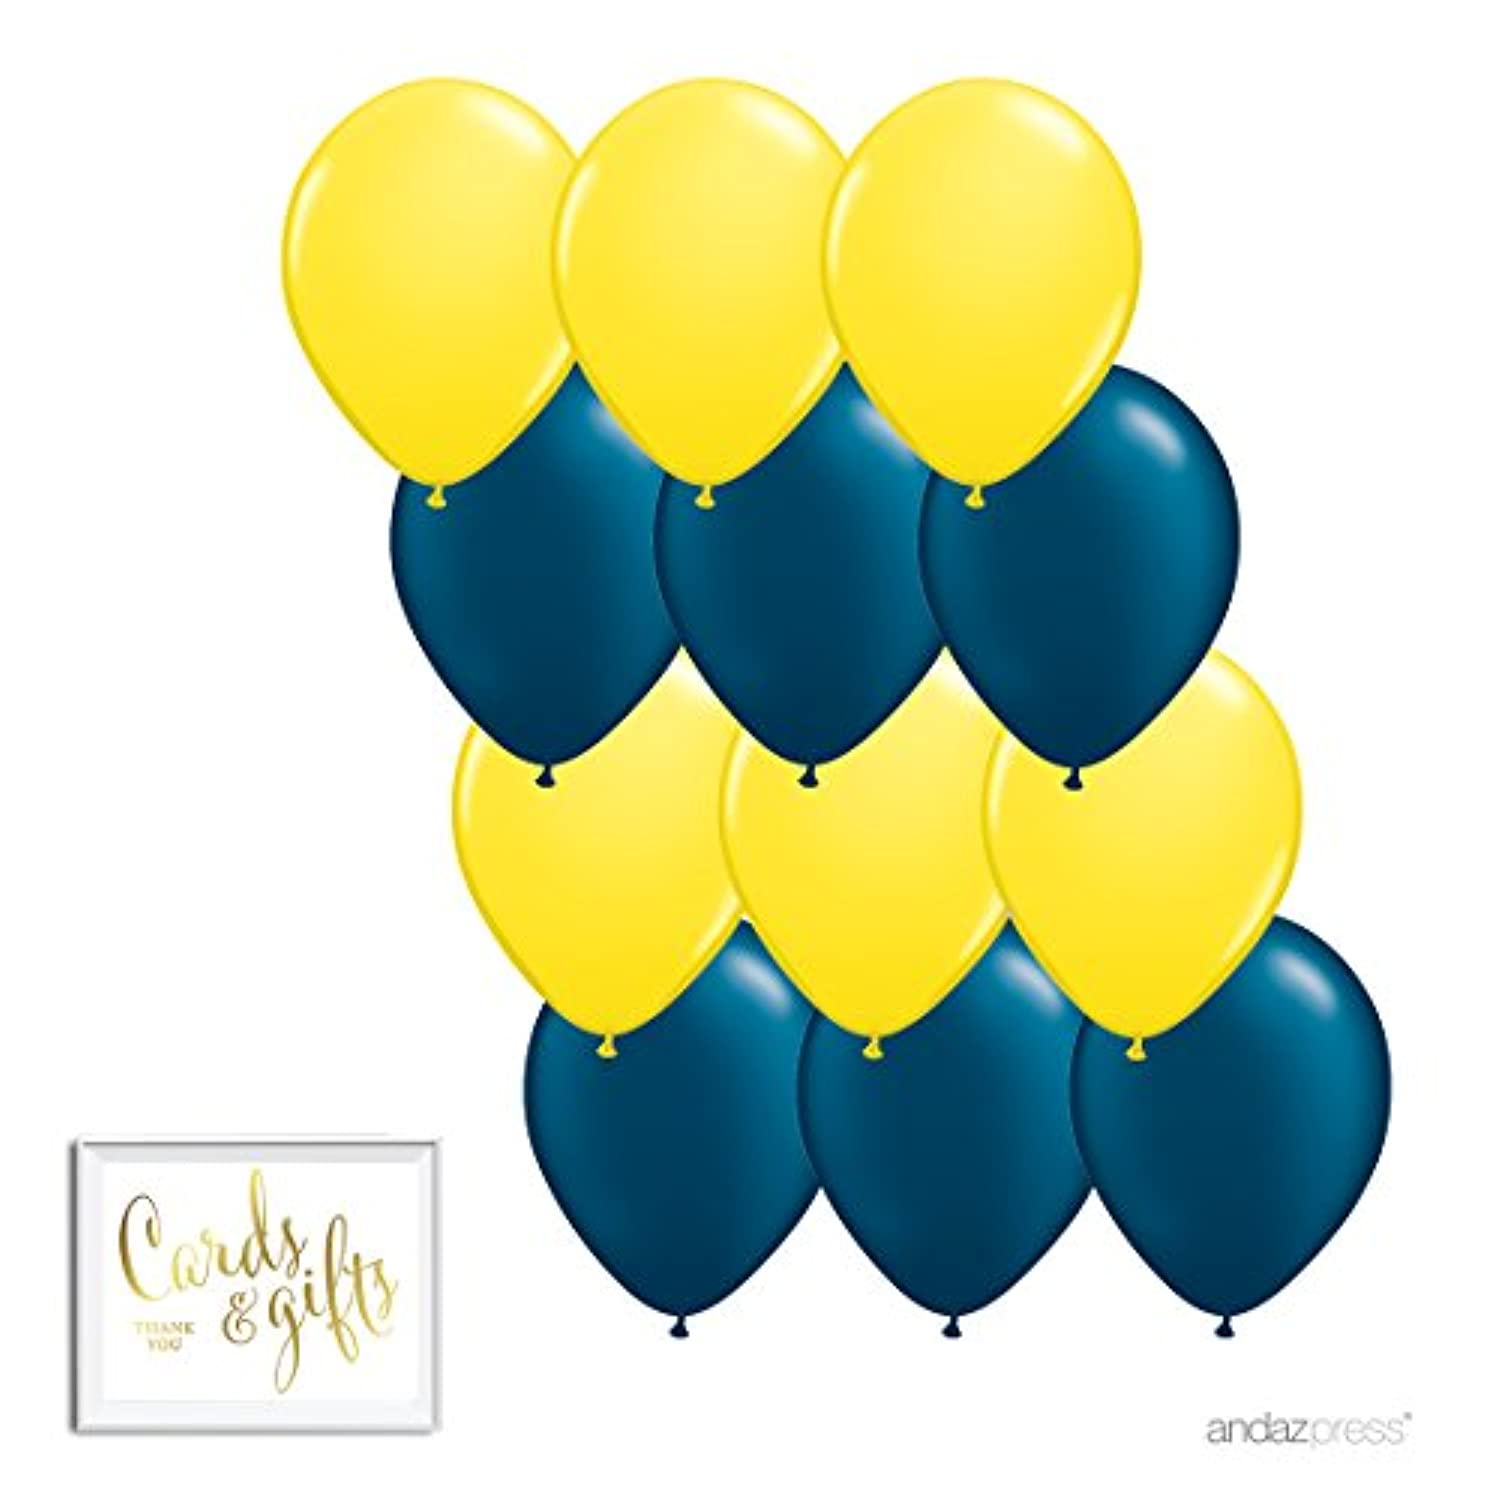 Andaz Press 11-inch Latex Balloon Duo Party Kit with Gold Cards & Gifts Sign, Yellow and Navy Blue, 12-pk